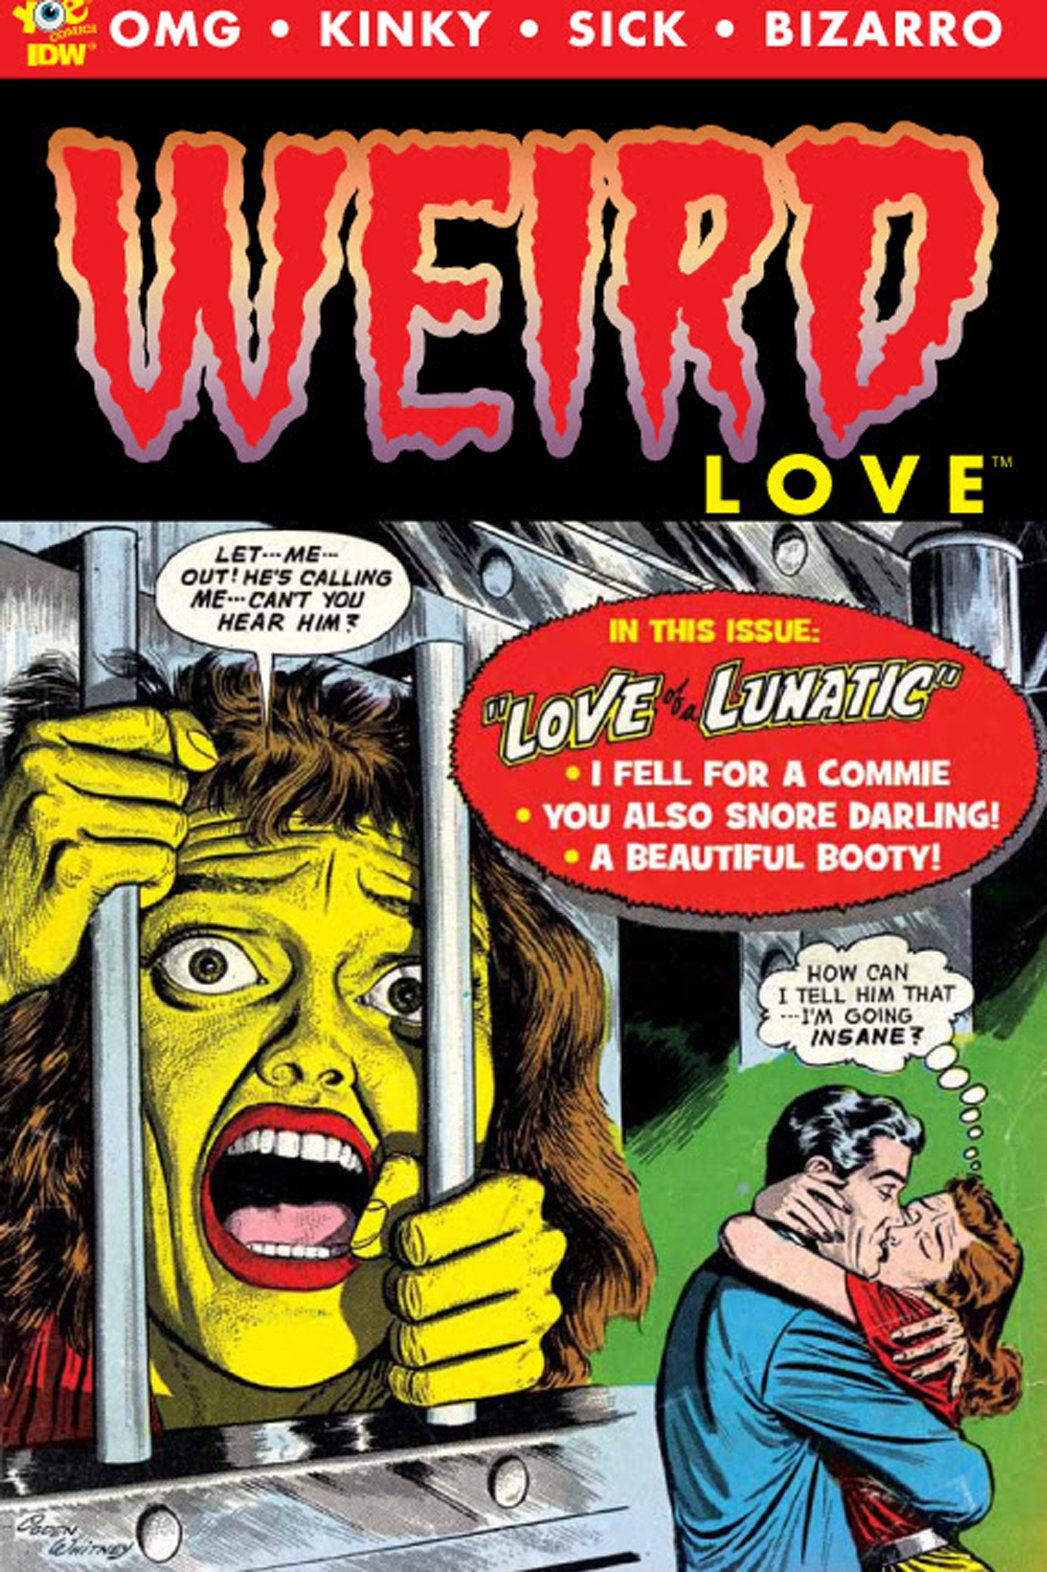 Weird_love_1_cover